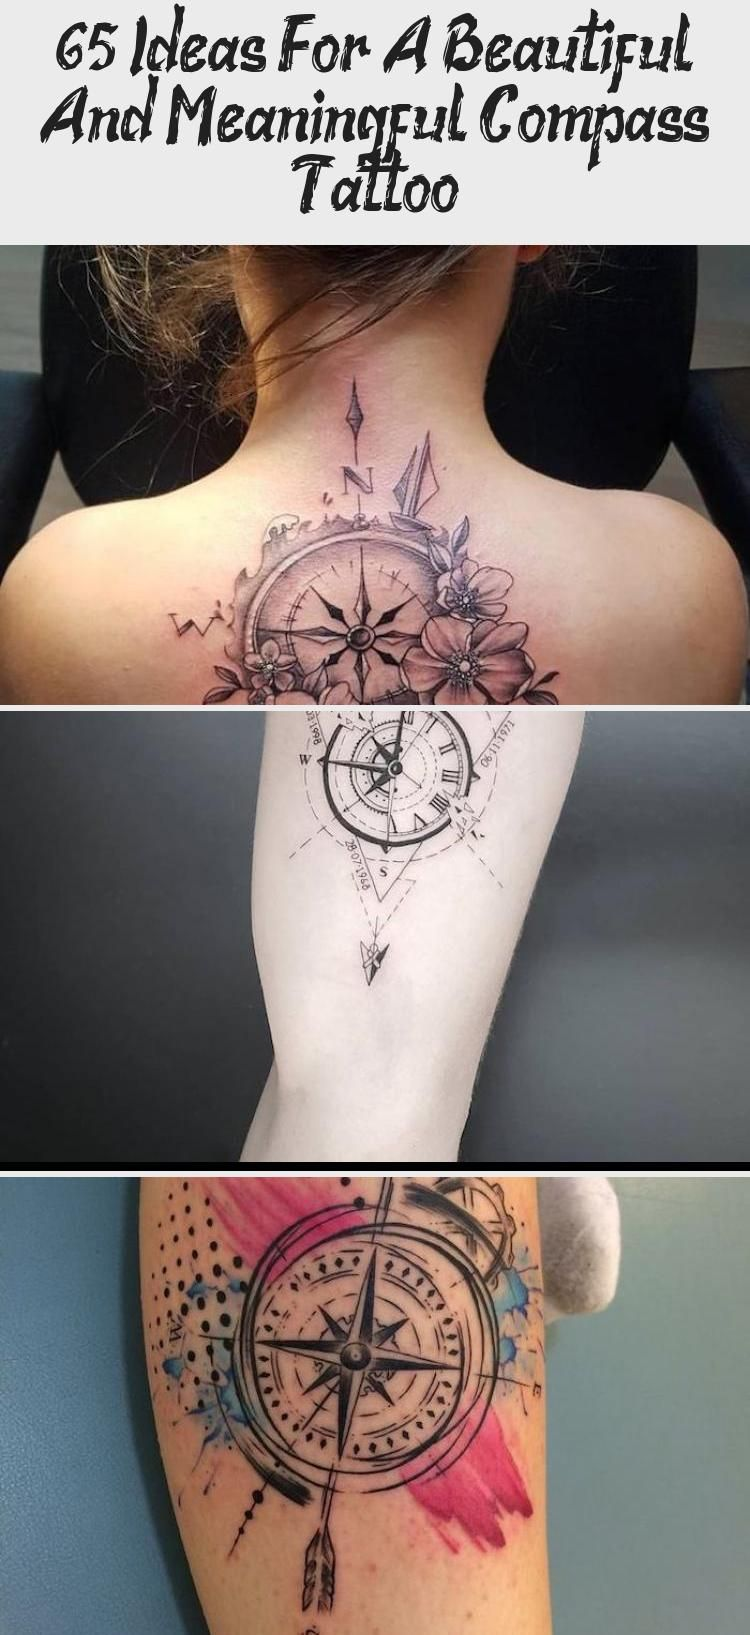 65 Ideas For A Beautiful And Meaningful Compass Tattoo – Tattoos